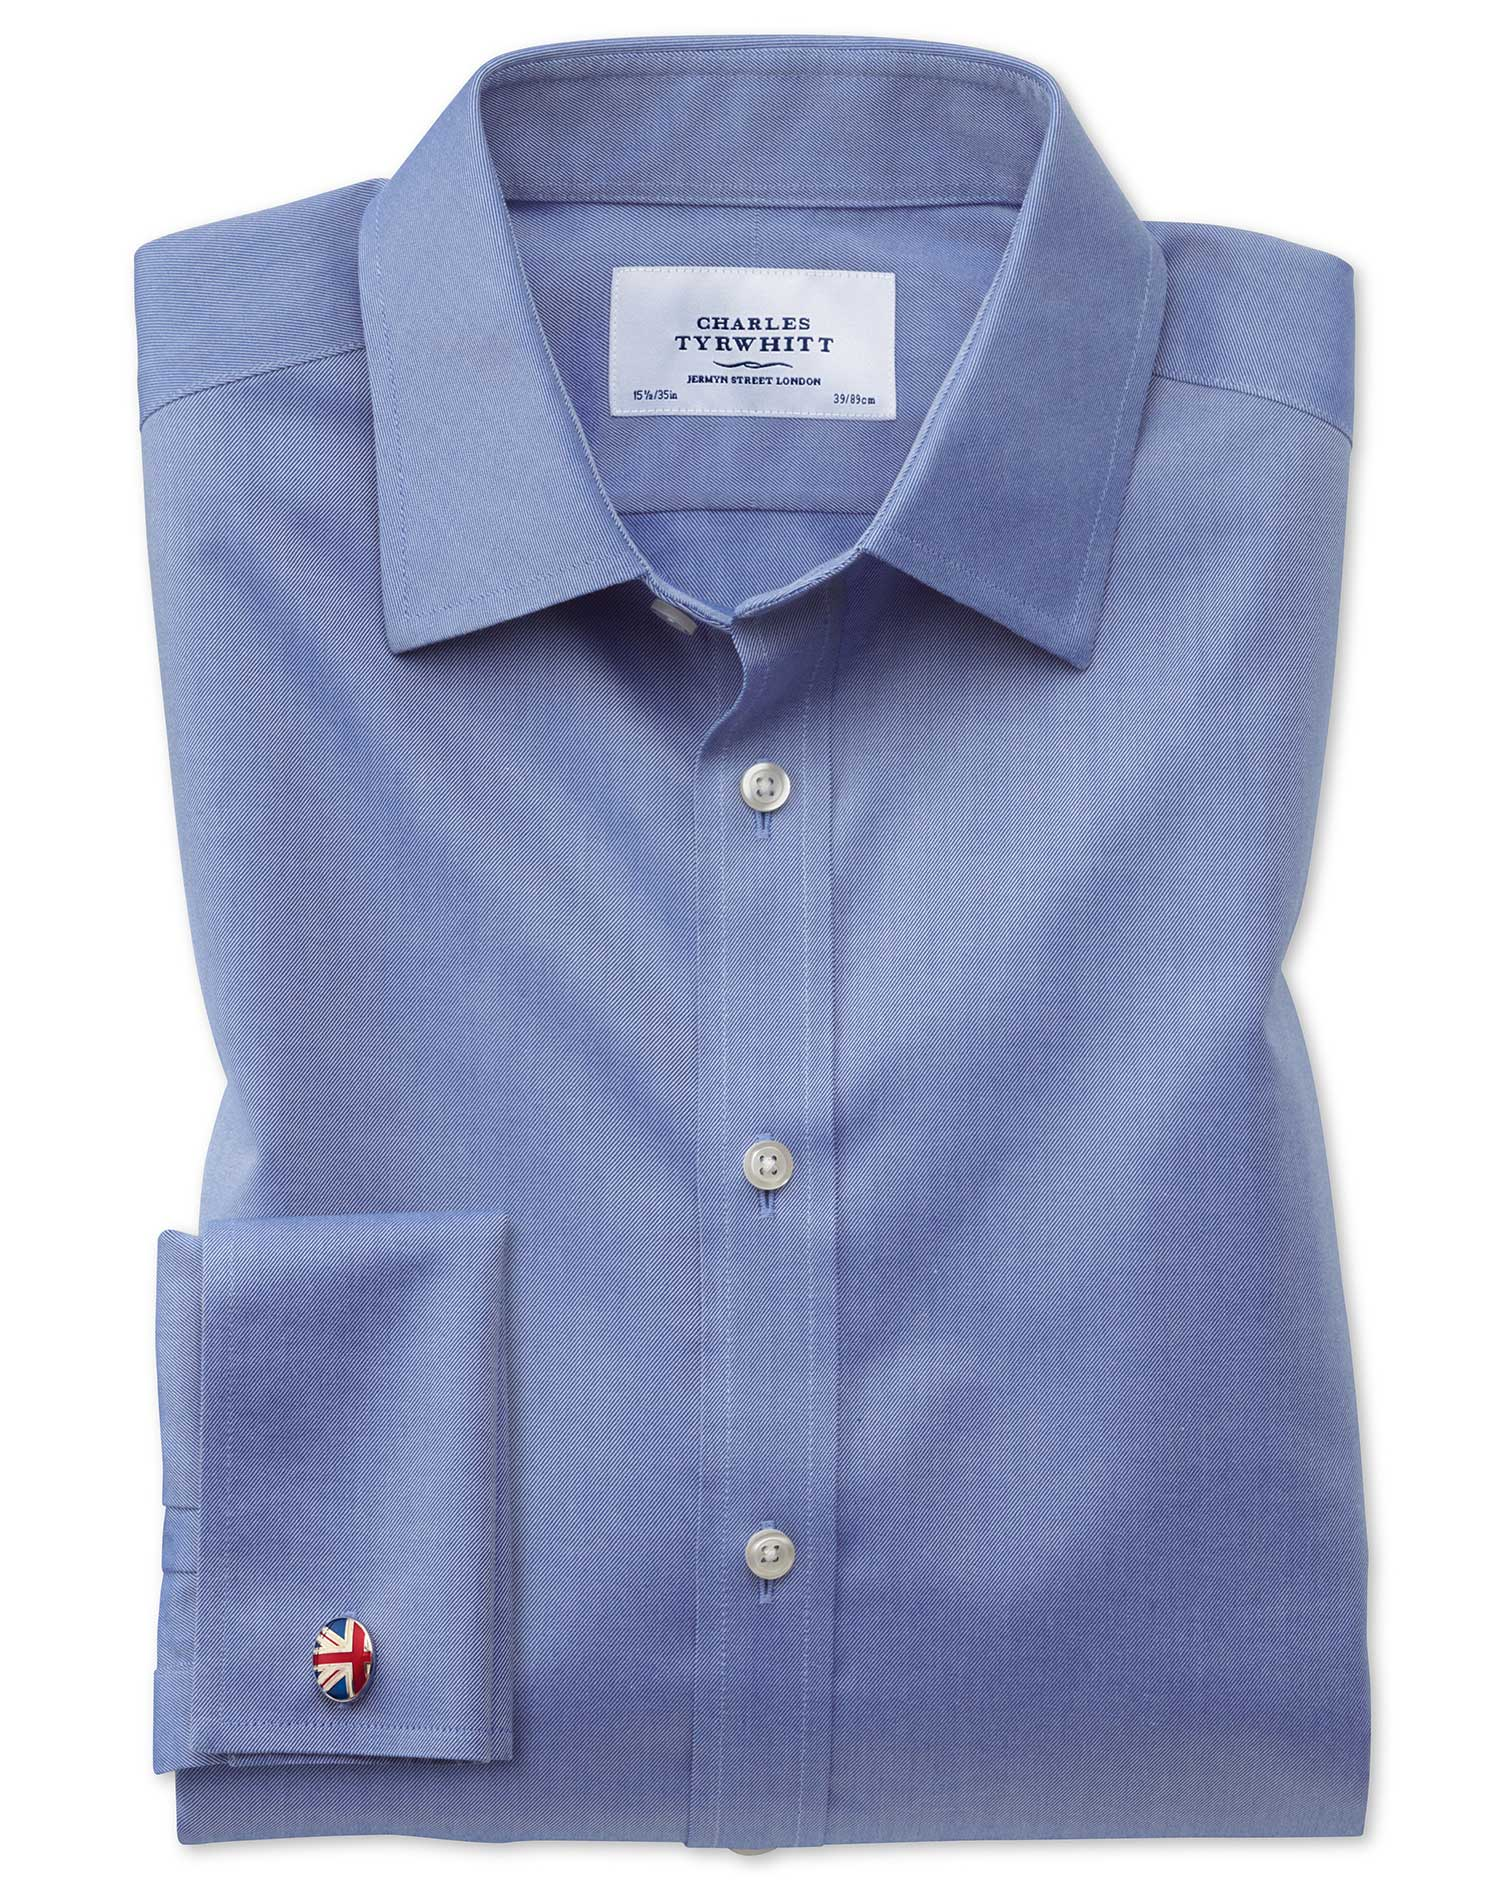 Extra Slim Fit Non-Iron Twill Mid Blue Cotton Formal Shirt Single Cuff Size 15.5/32 by Charles Tyrwh